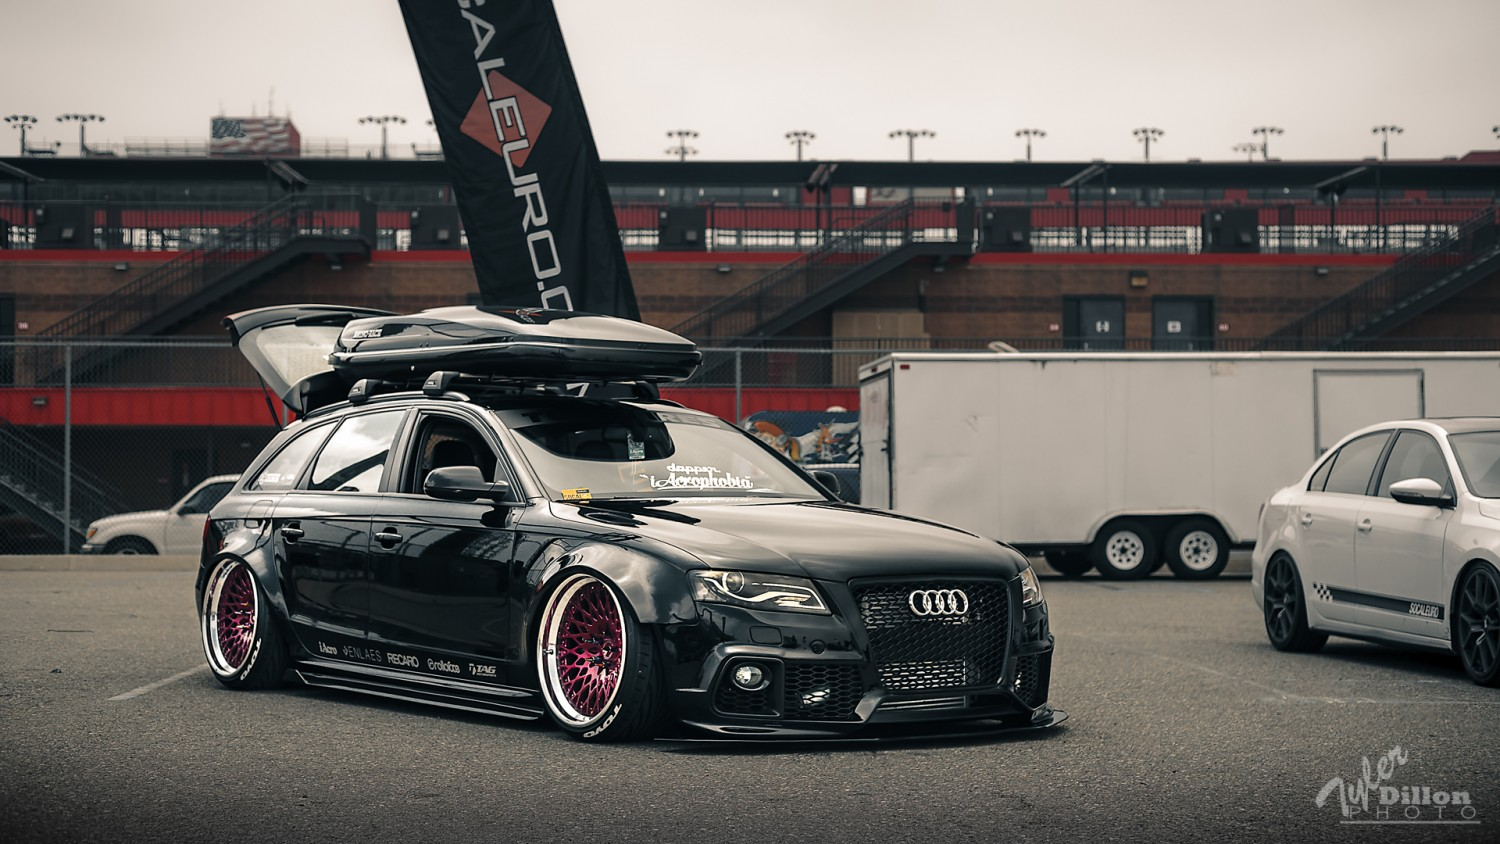 Widebody Estate Stancenation Form Gt Function